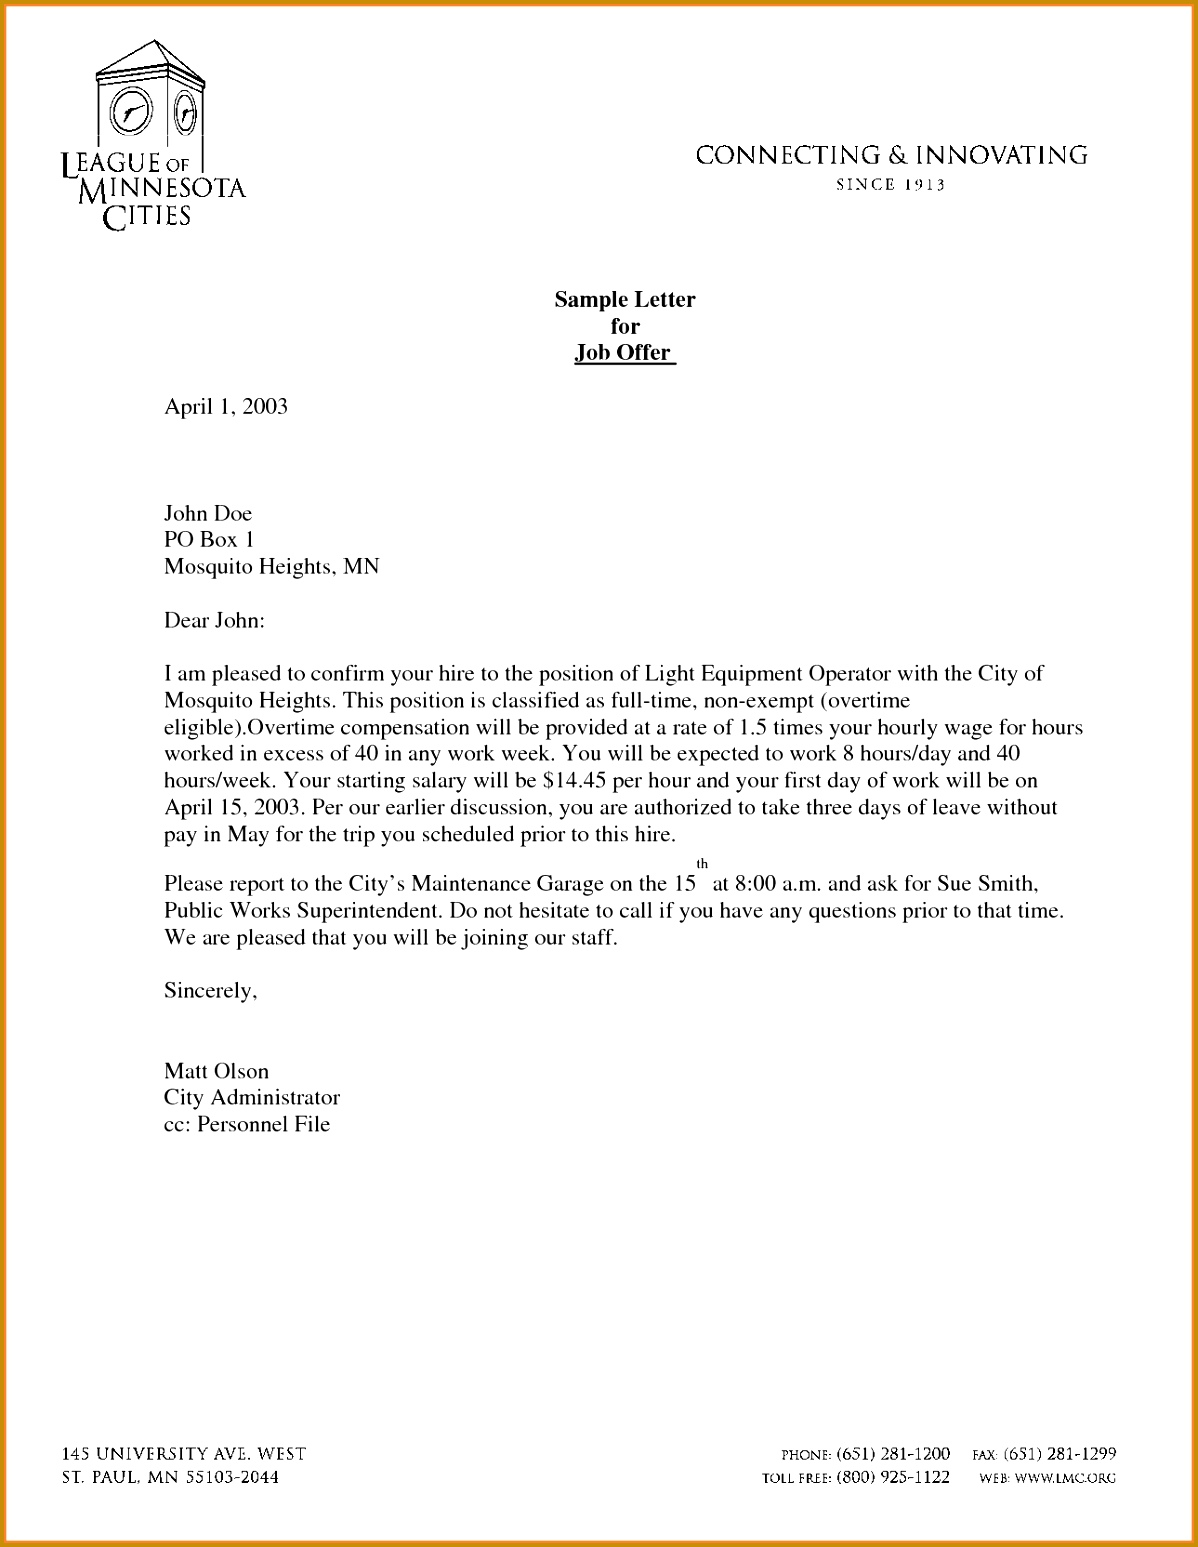 Reschedule Appointment Letter Sample - Letter BestKitchenView CO